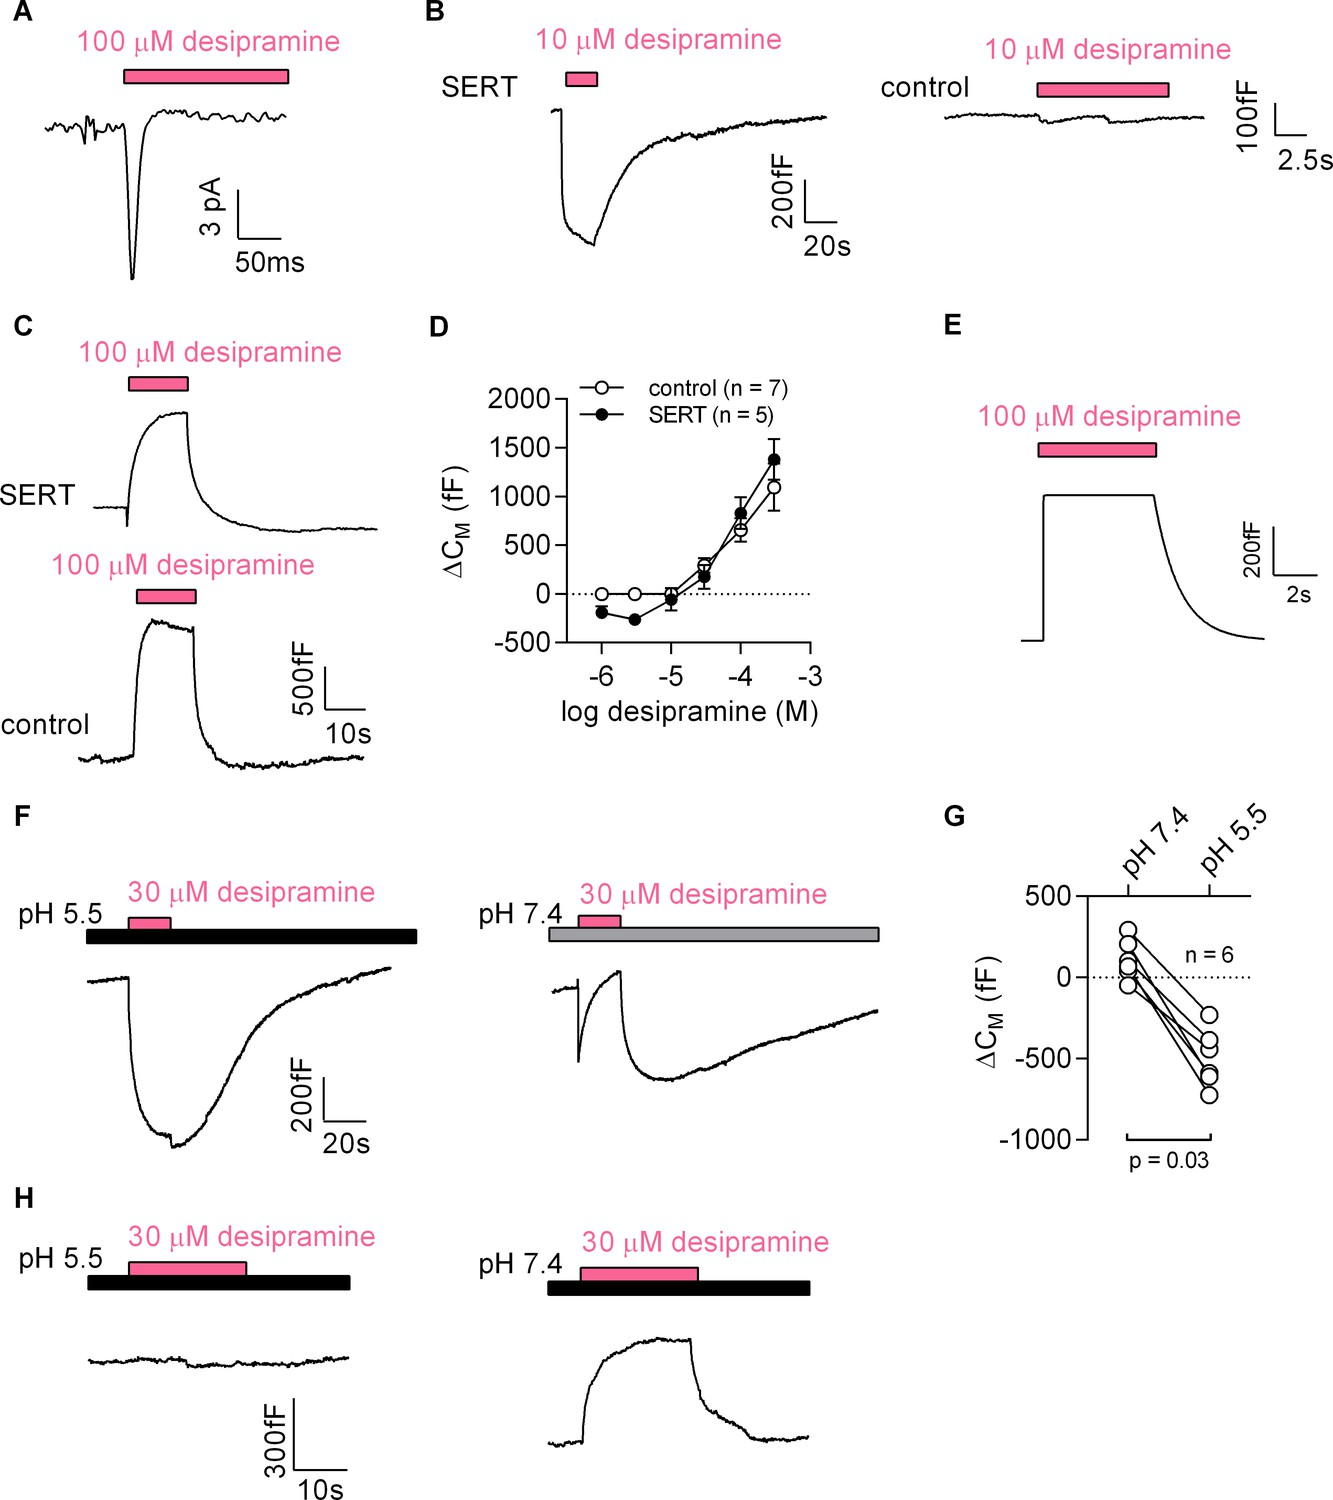 A Label Free Approach To Detect Ligand Binding Cell Surface Charge Sensitive Amplifier Circuit Desipramine Binds Sert At Low Concentrations And Changes The Density Inner Leaflet Of Membrane High